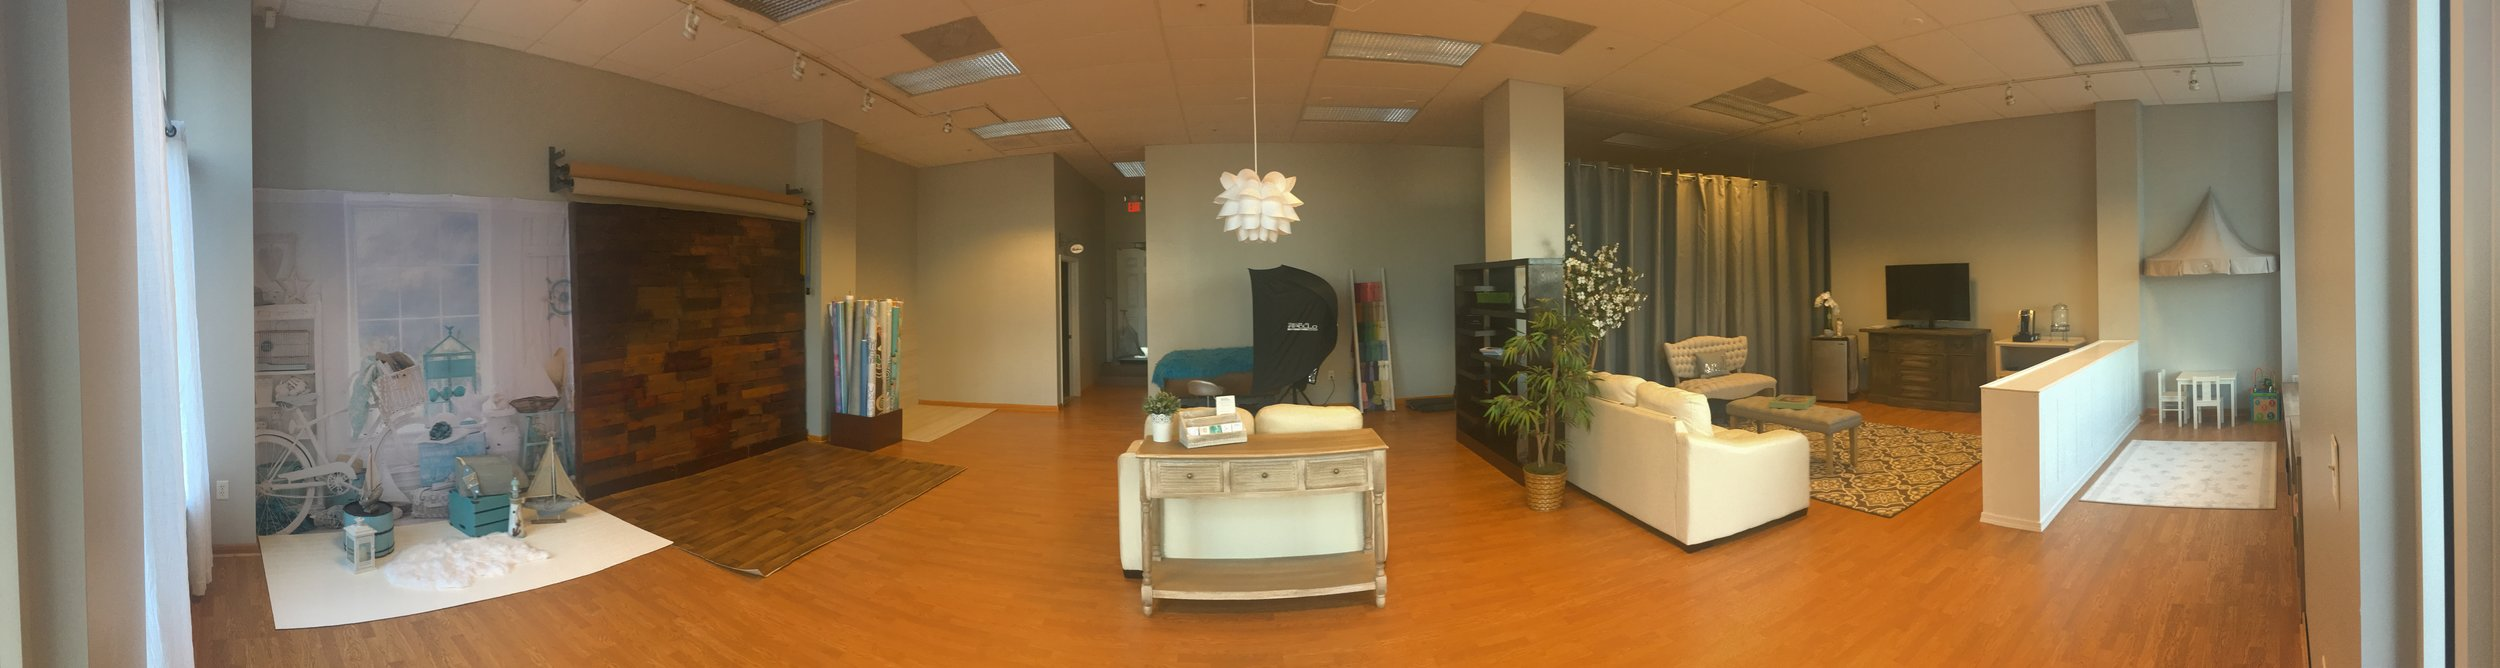 Panoramic image of our new studio!